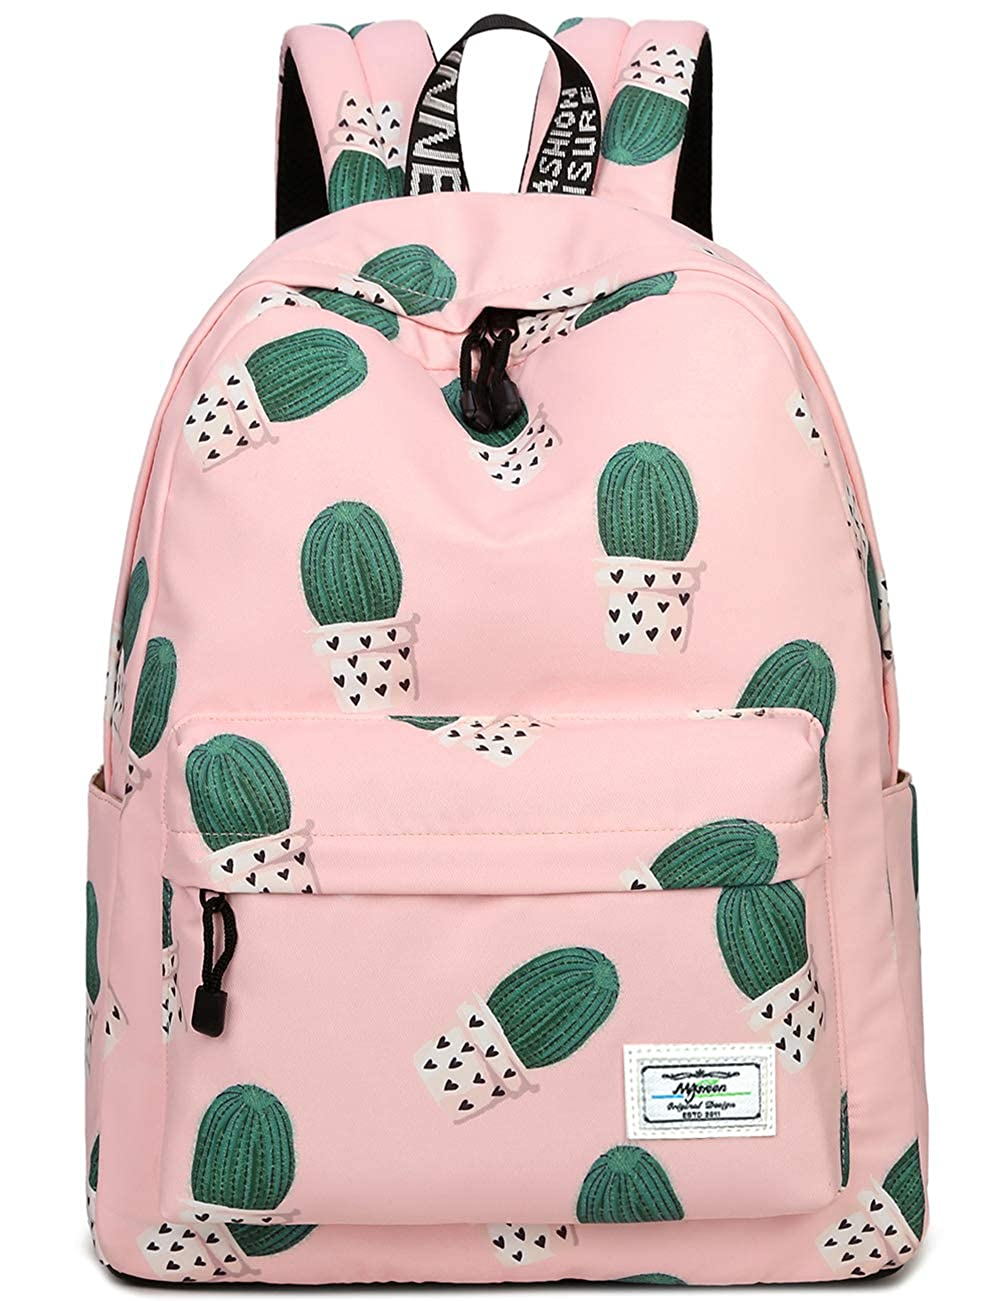 Mygreen Casual Style Lightweight Canvas Backpack School Bag Travel Daypack